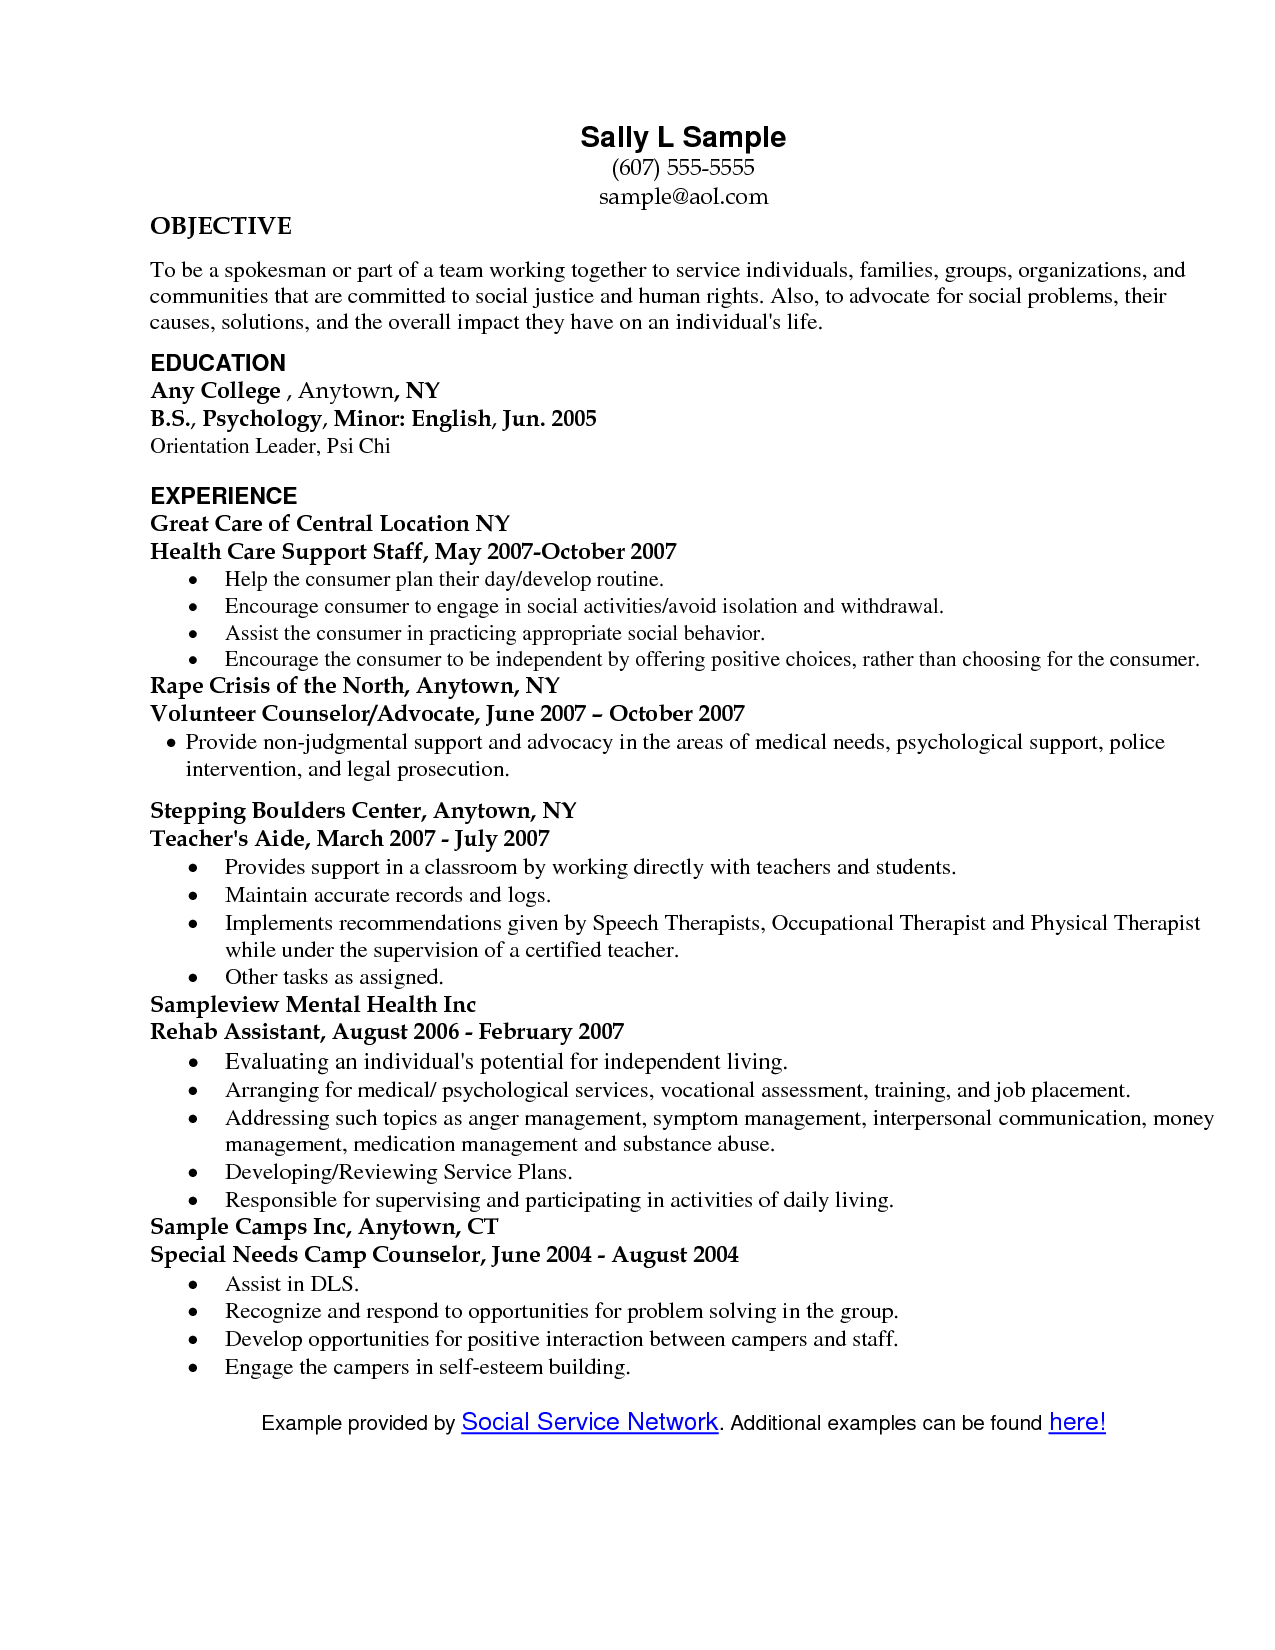 Social Service professional sample resume Google Search